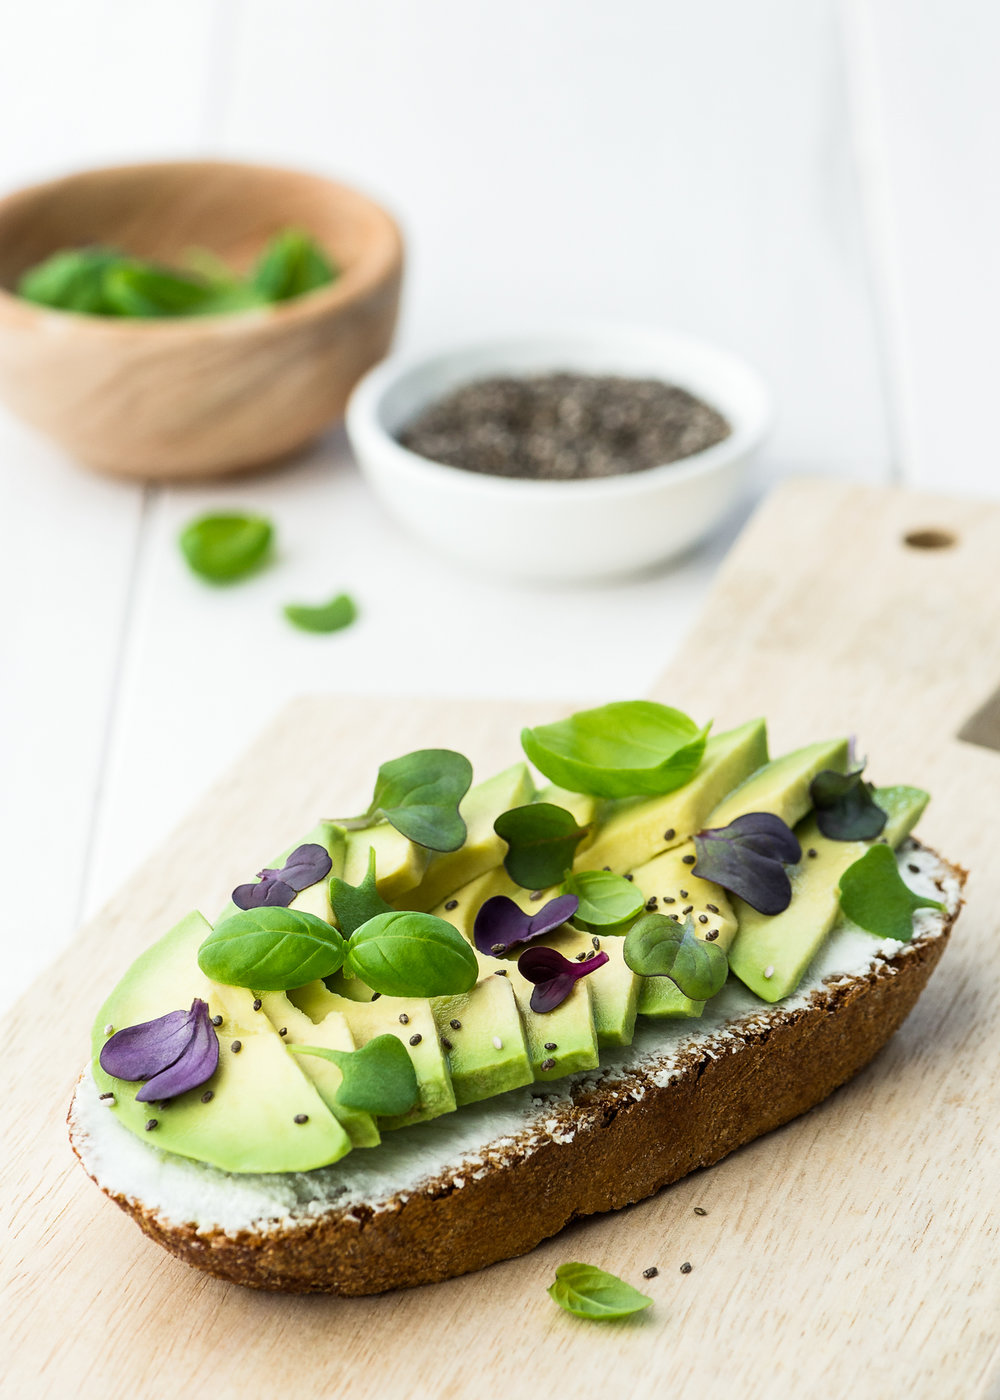 Avocado_Toast-Jany_Tremblay-2.jpg